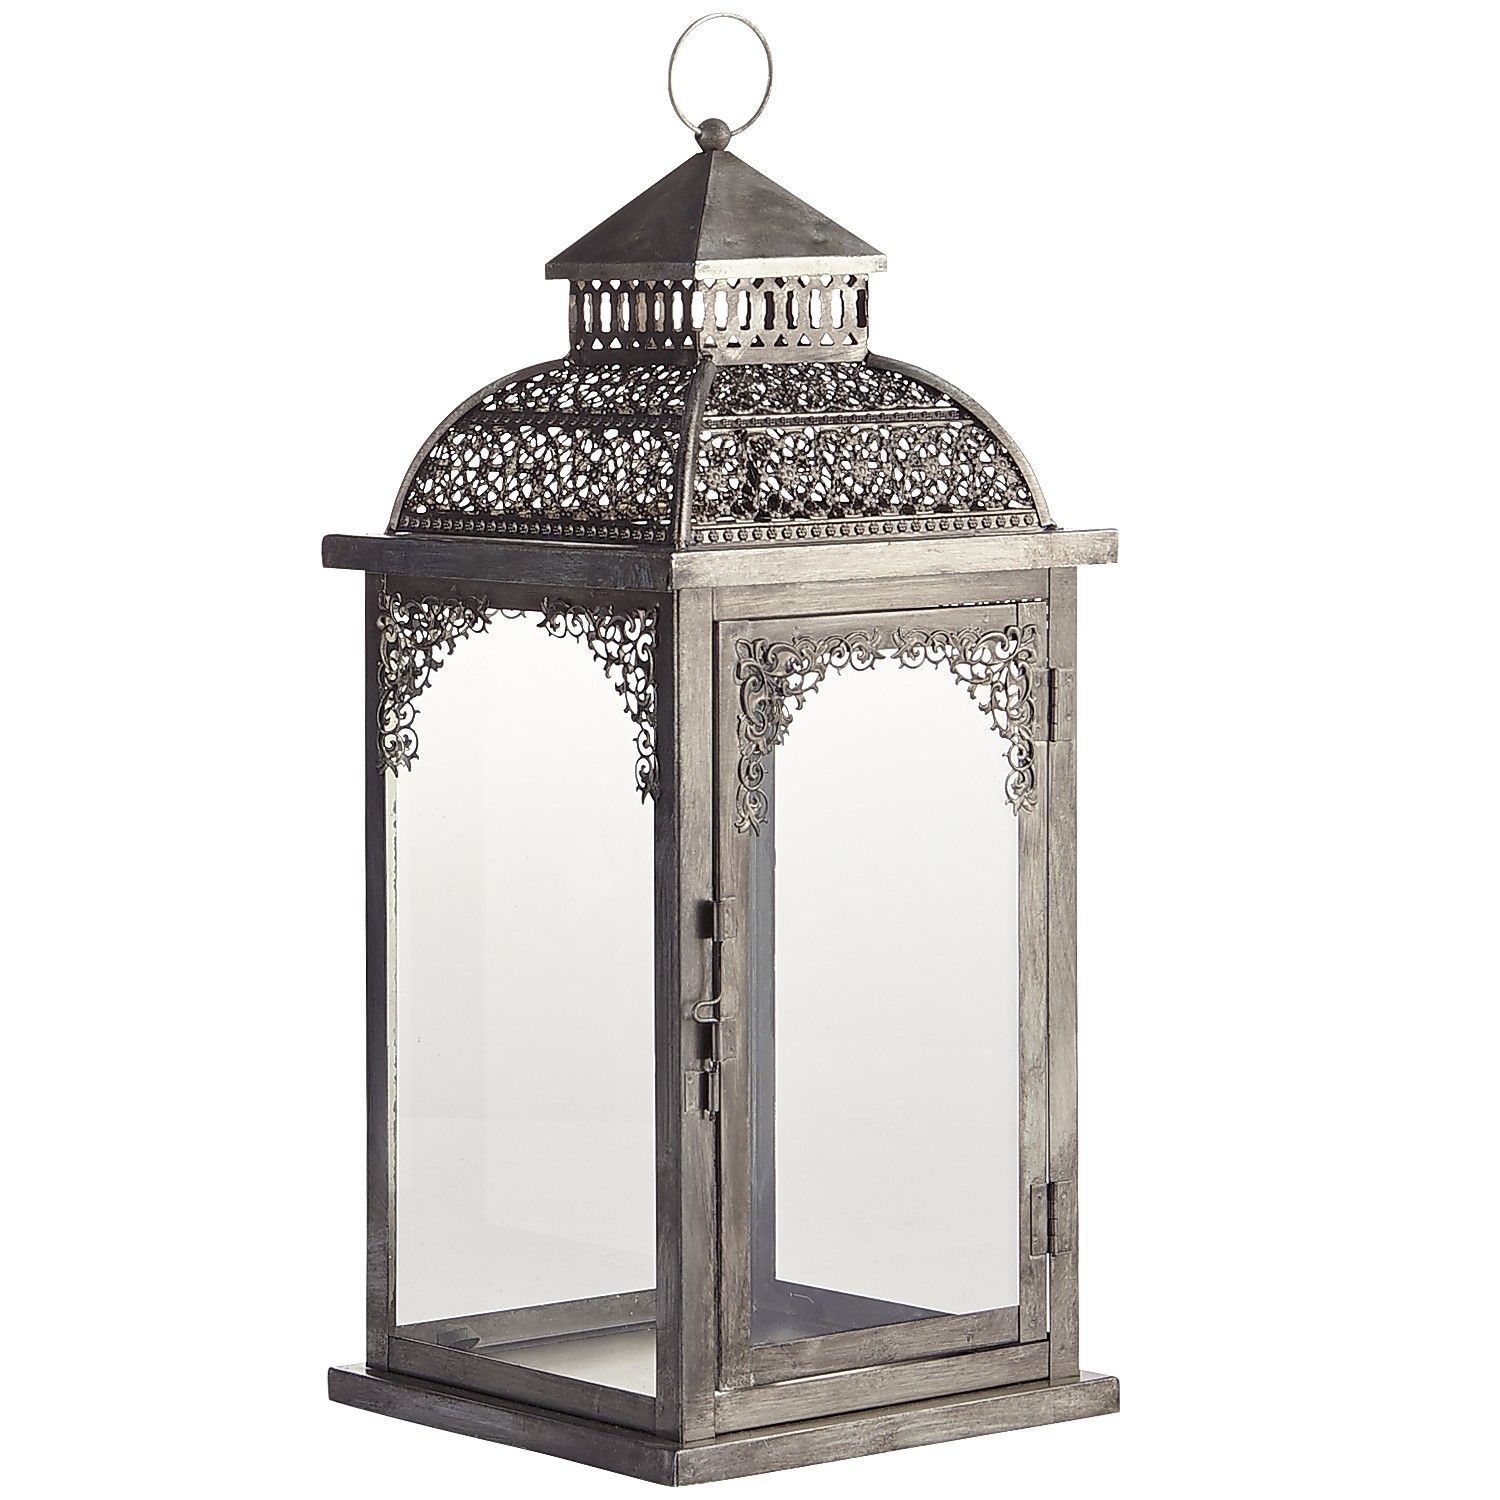 Silver Pierced Lanterns - Wrought Iron - Outdoor | *decor > Candles throughout Outdoor Iron Lanterns (Image 17 of 20)